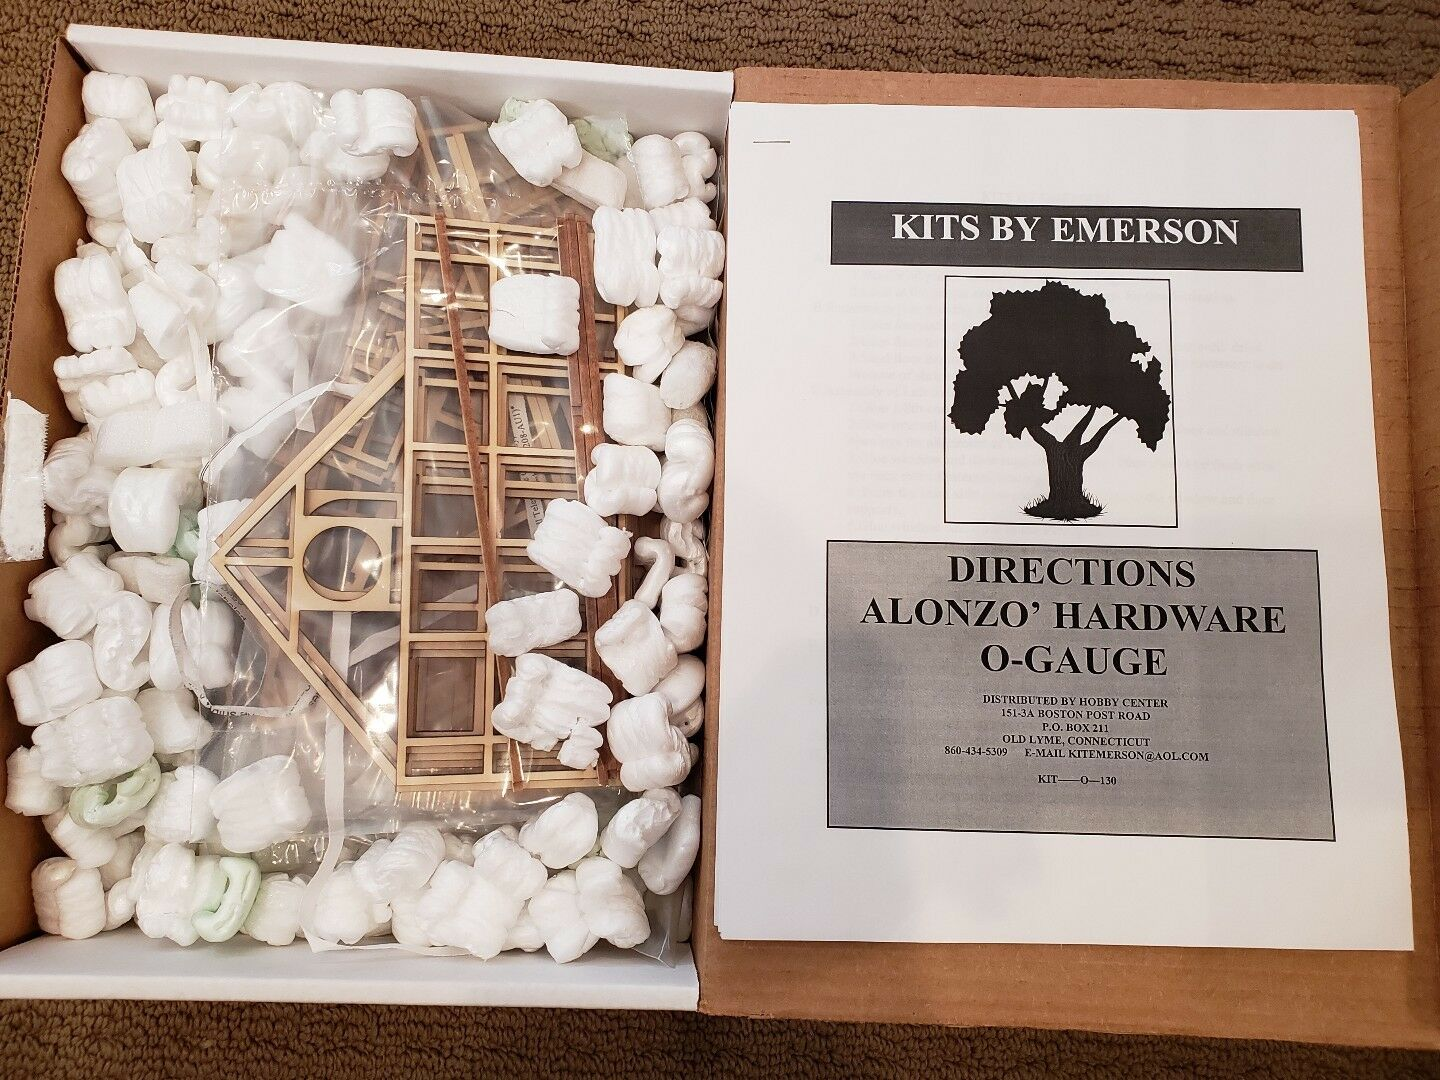 O GAUGE KITS BY EMERSON ALONZO HARDWARE. NEW